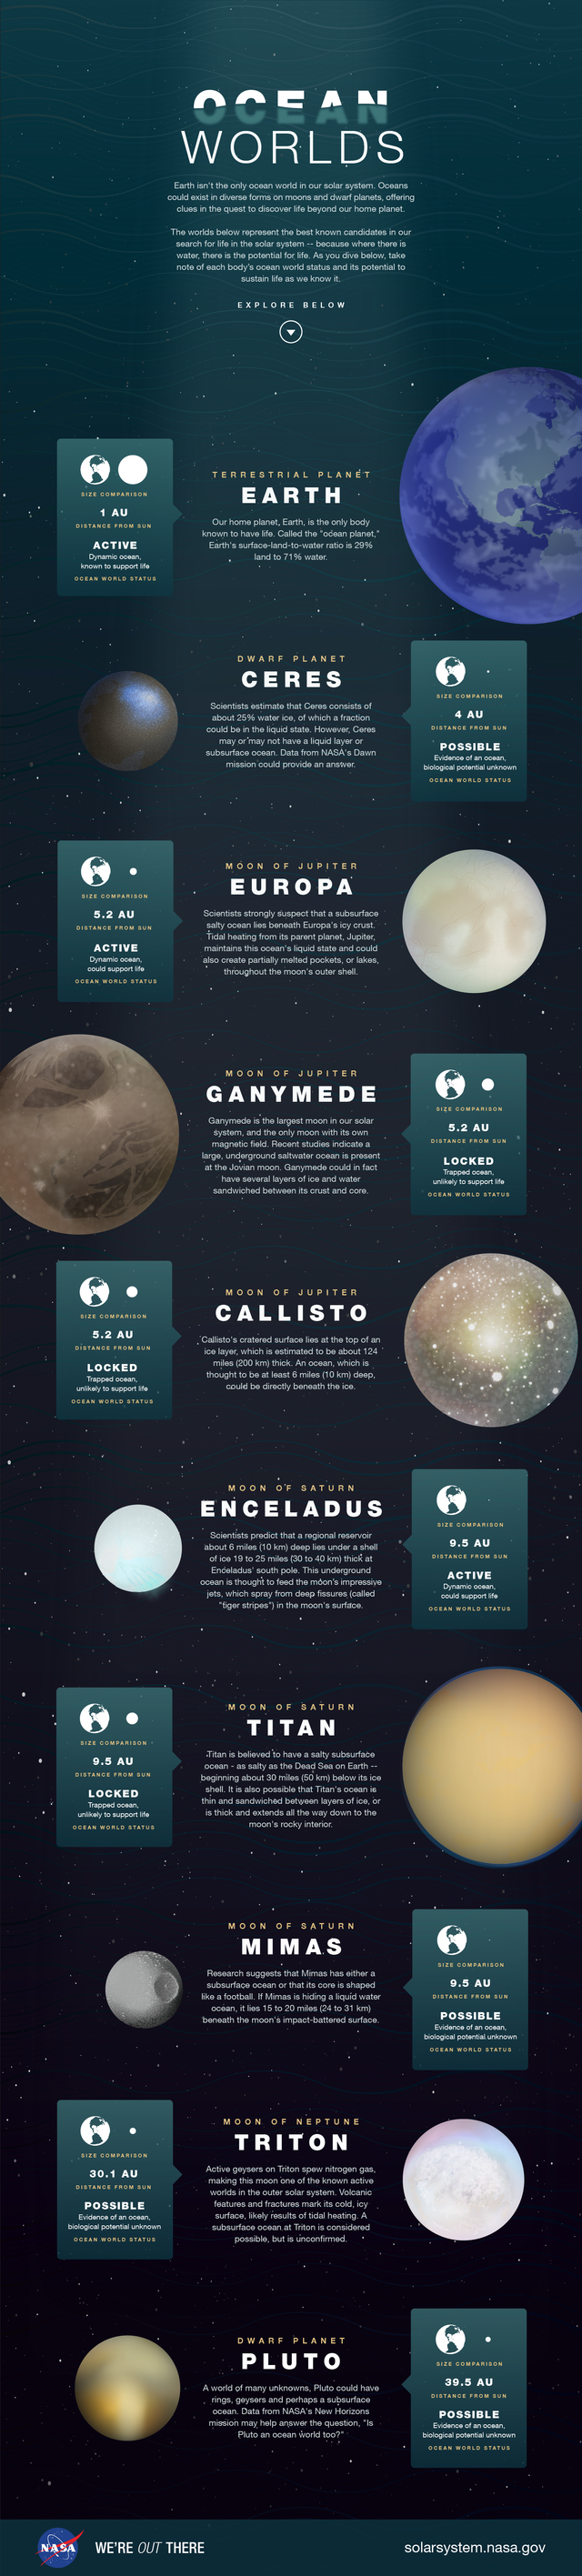 This NASA infographic shows Earth isn't the only world with water on it.